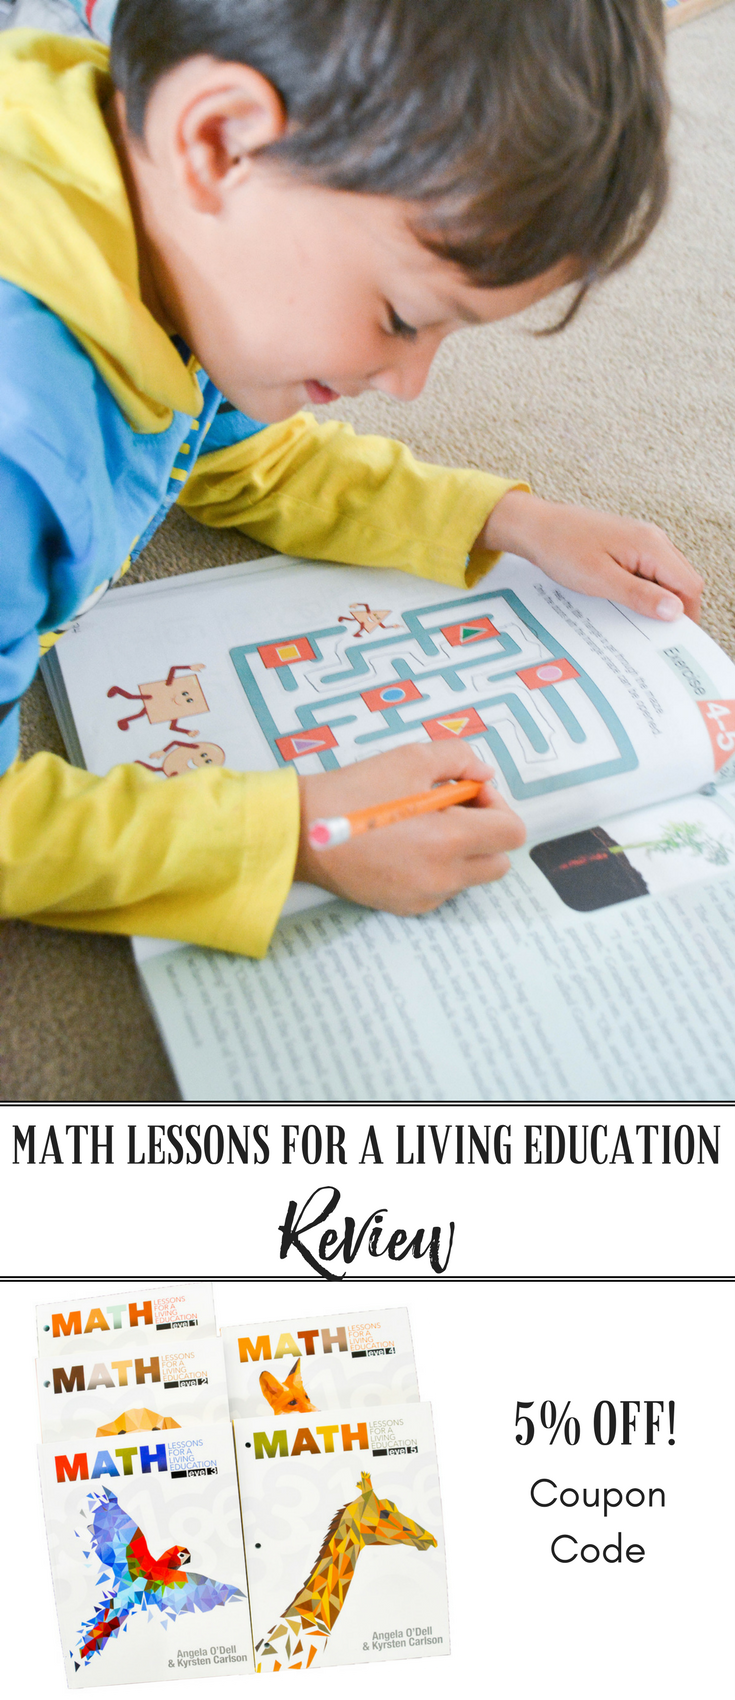 Math Lessons for a Living Education Review | Charlotte Mason Math | elementary math | elementary math curriculum | charlotte mason curriculum | homeschool math | homeschool math kindergarten | homeschool math 2nd grade | hands on math | christian curriculum | christian homeschooling | math curriculum | living math | fun math | story math | math through stories | special needs math | math for learning disability